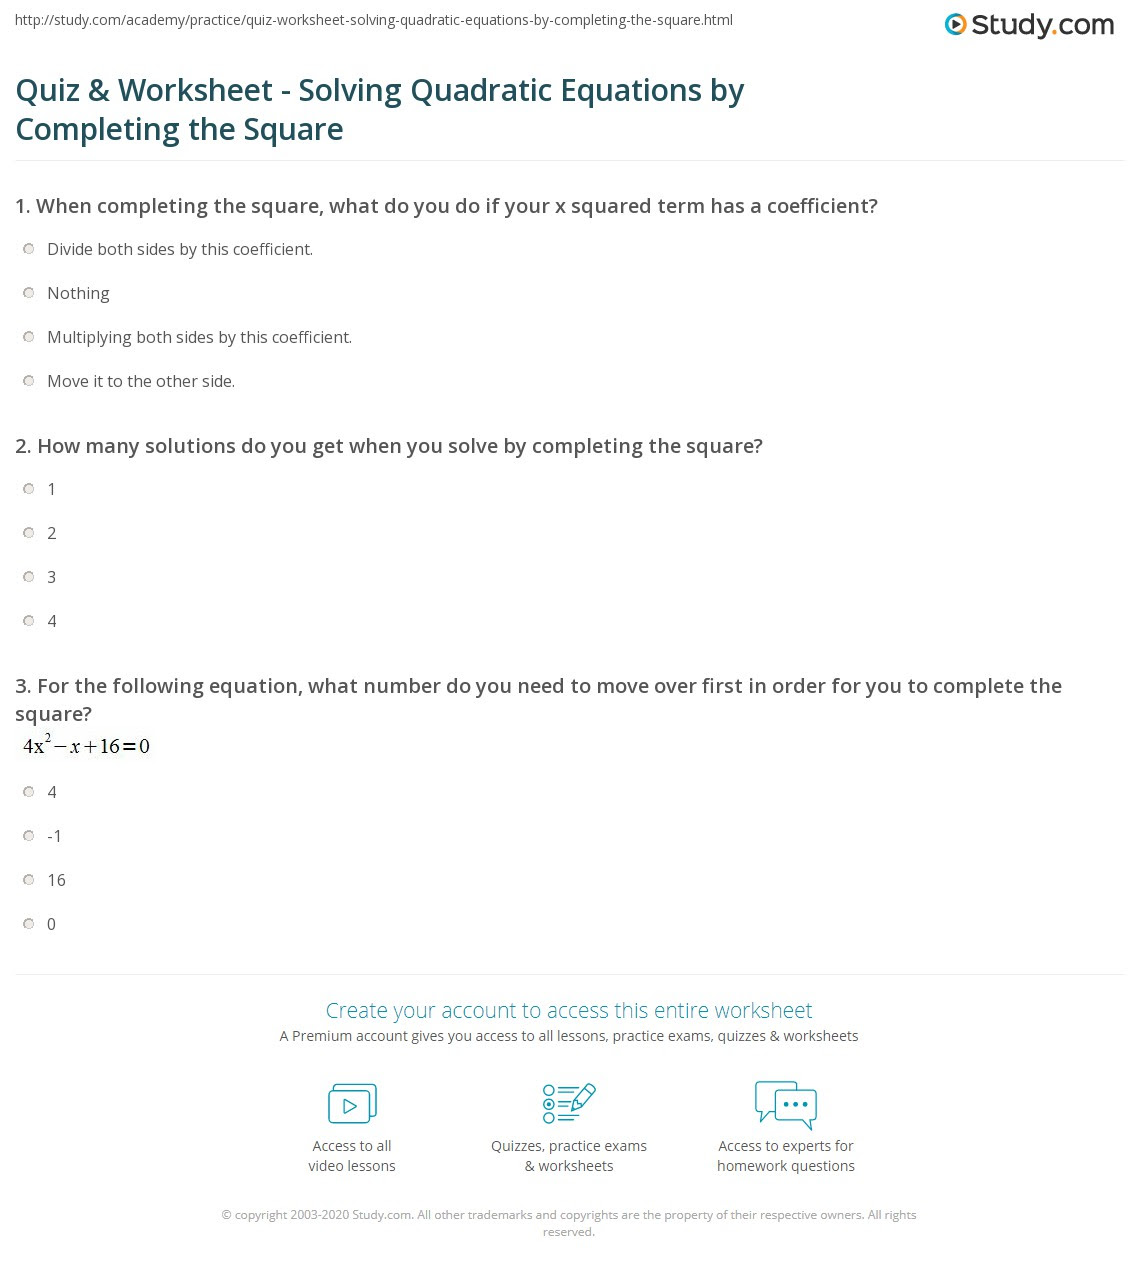 Quiz  Worksheet  Solving Quadratic Equations by Completing the Square  Study.com